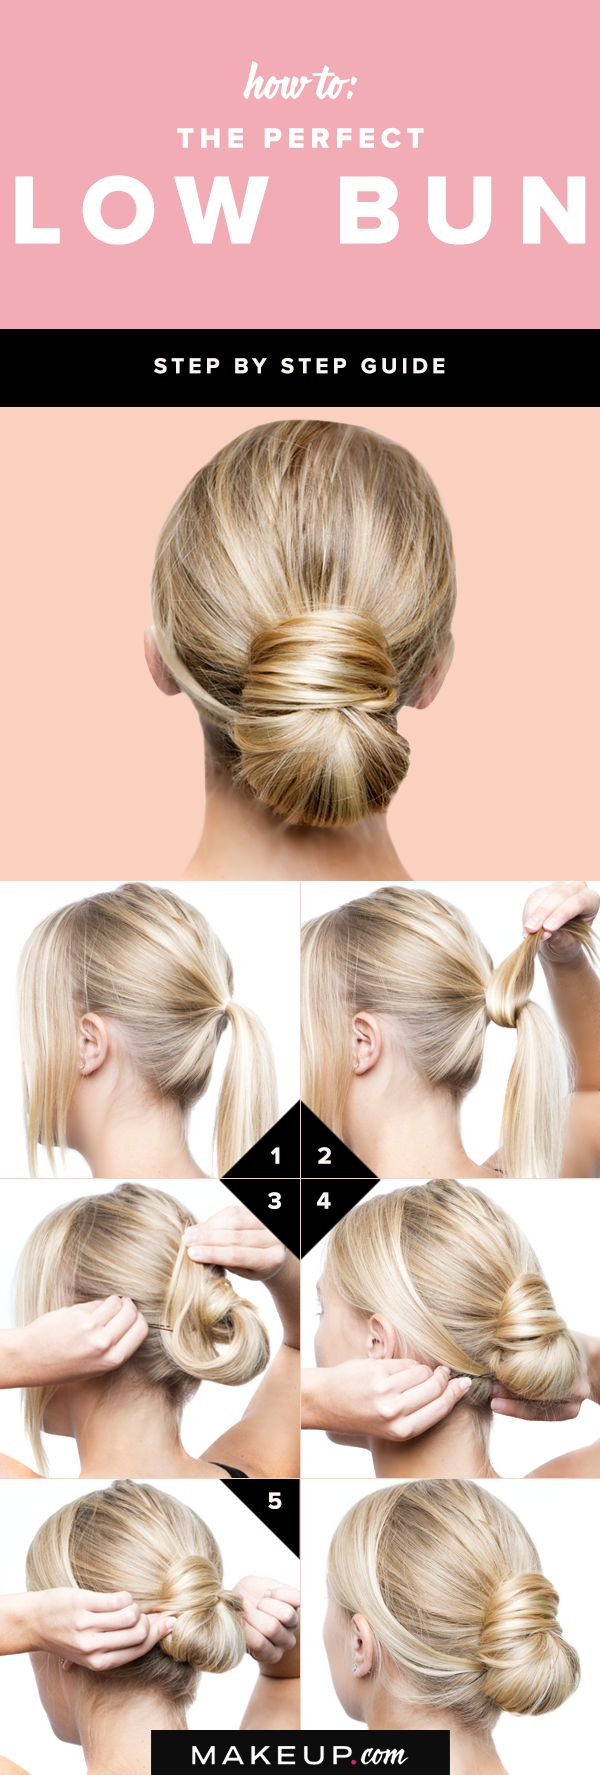 288 best hair inspiration images on pinterest hairstyle ideas how to the perfect low bun how to updo for medium hairhairstyles for medium length hair tutorialsimple solutioingenieria